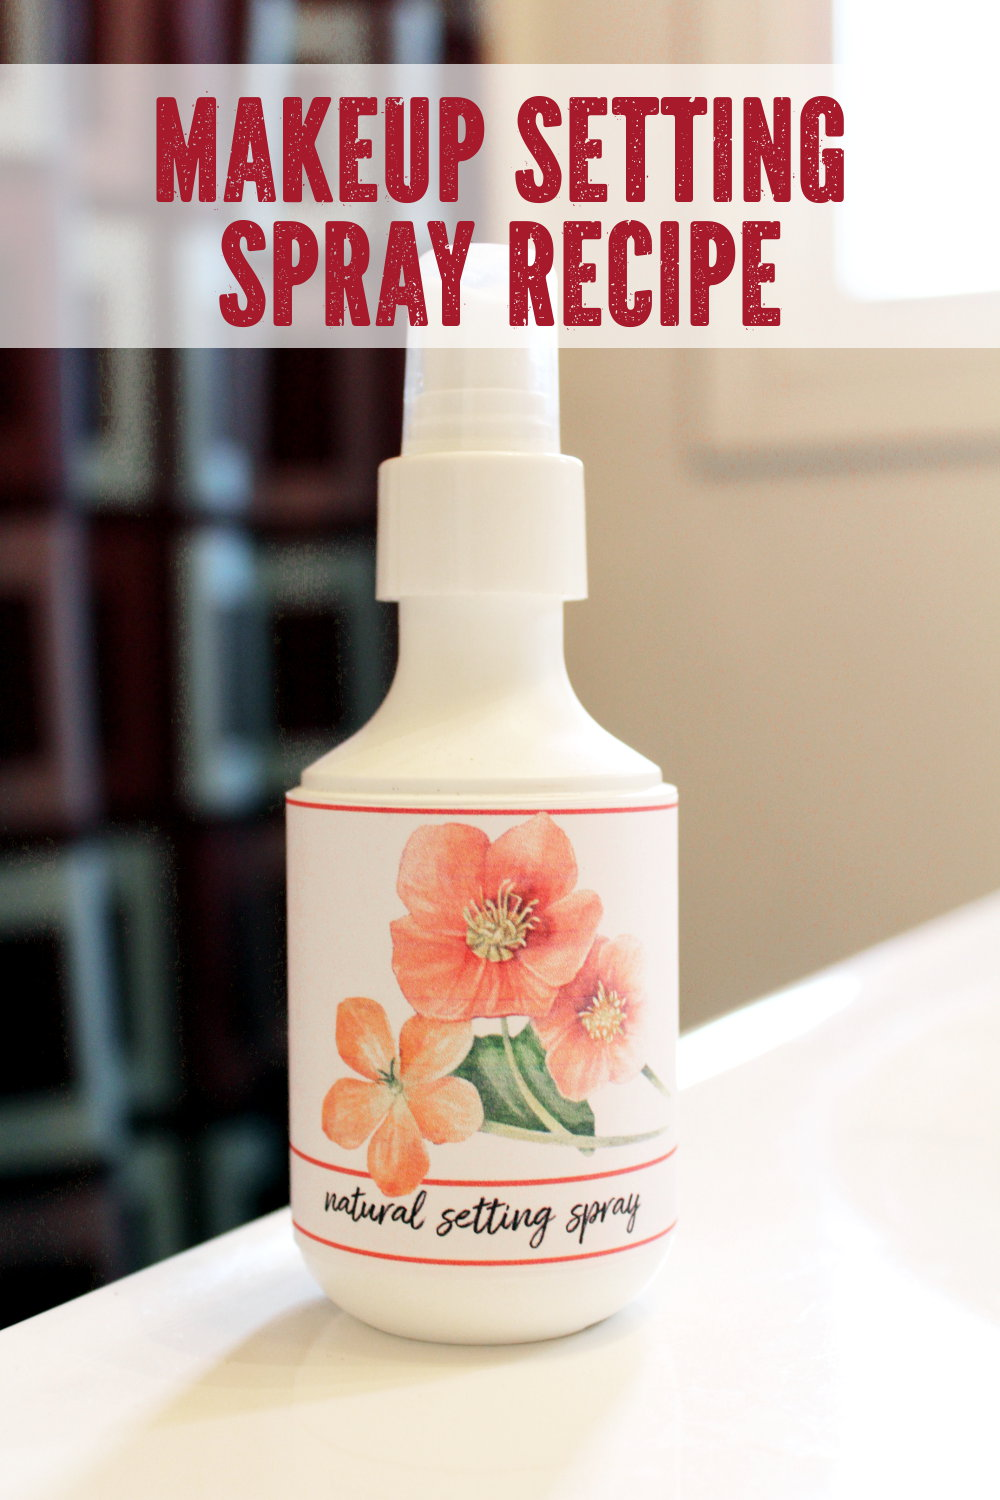 All Natural Makeup Setting Spray DIY. This natural makeup setting spray recipe is more than just a makeup setting spray. It's also a multi-purpose product that doubles as a skin hydrating spray. So it's not only perfect for keeping your makeup in place all summer long. It also hydrates parched skin and soothes summer sunburns.